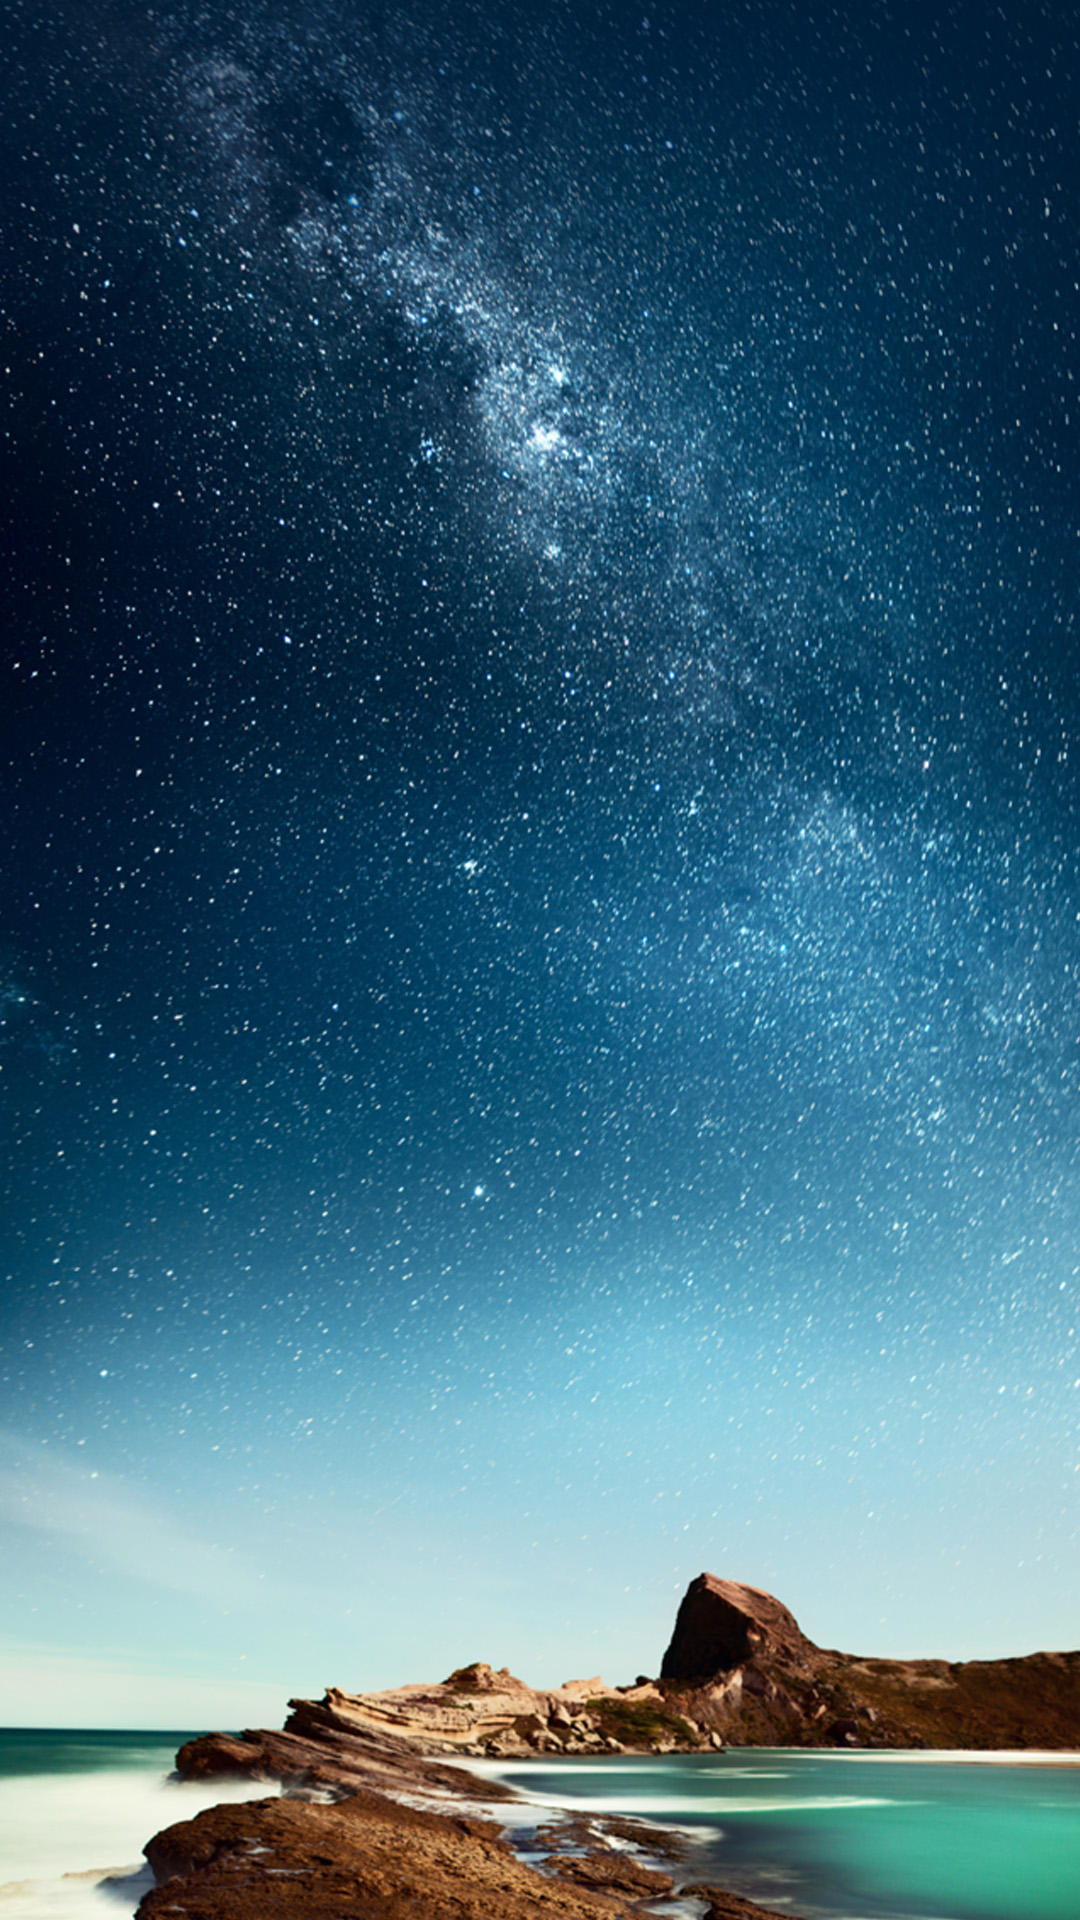 Cool Nature Landscape Iphone Backgrounds Wallpaper photos of Cool 1080x1920